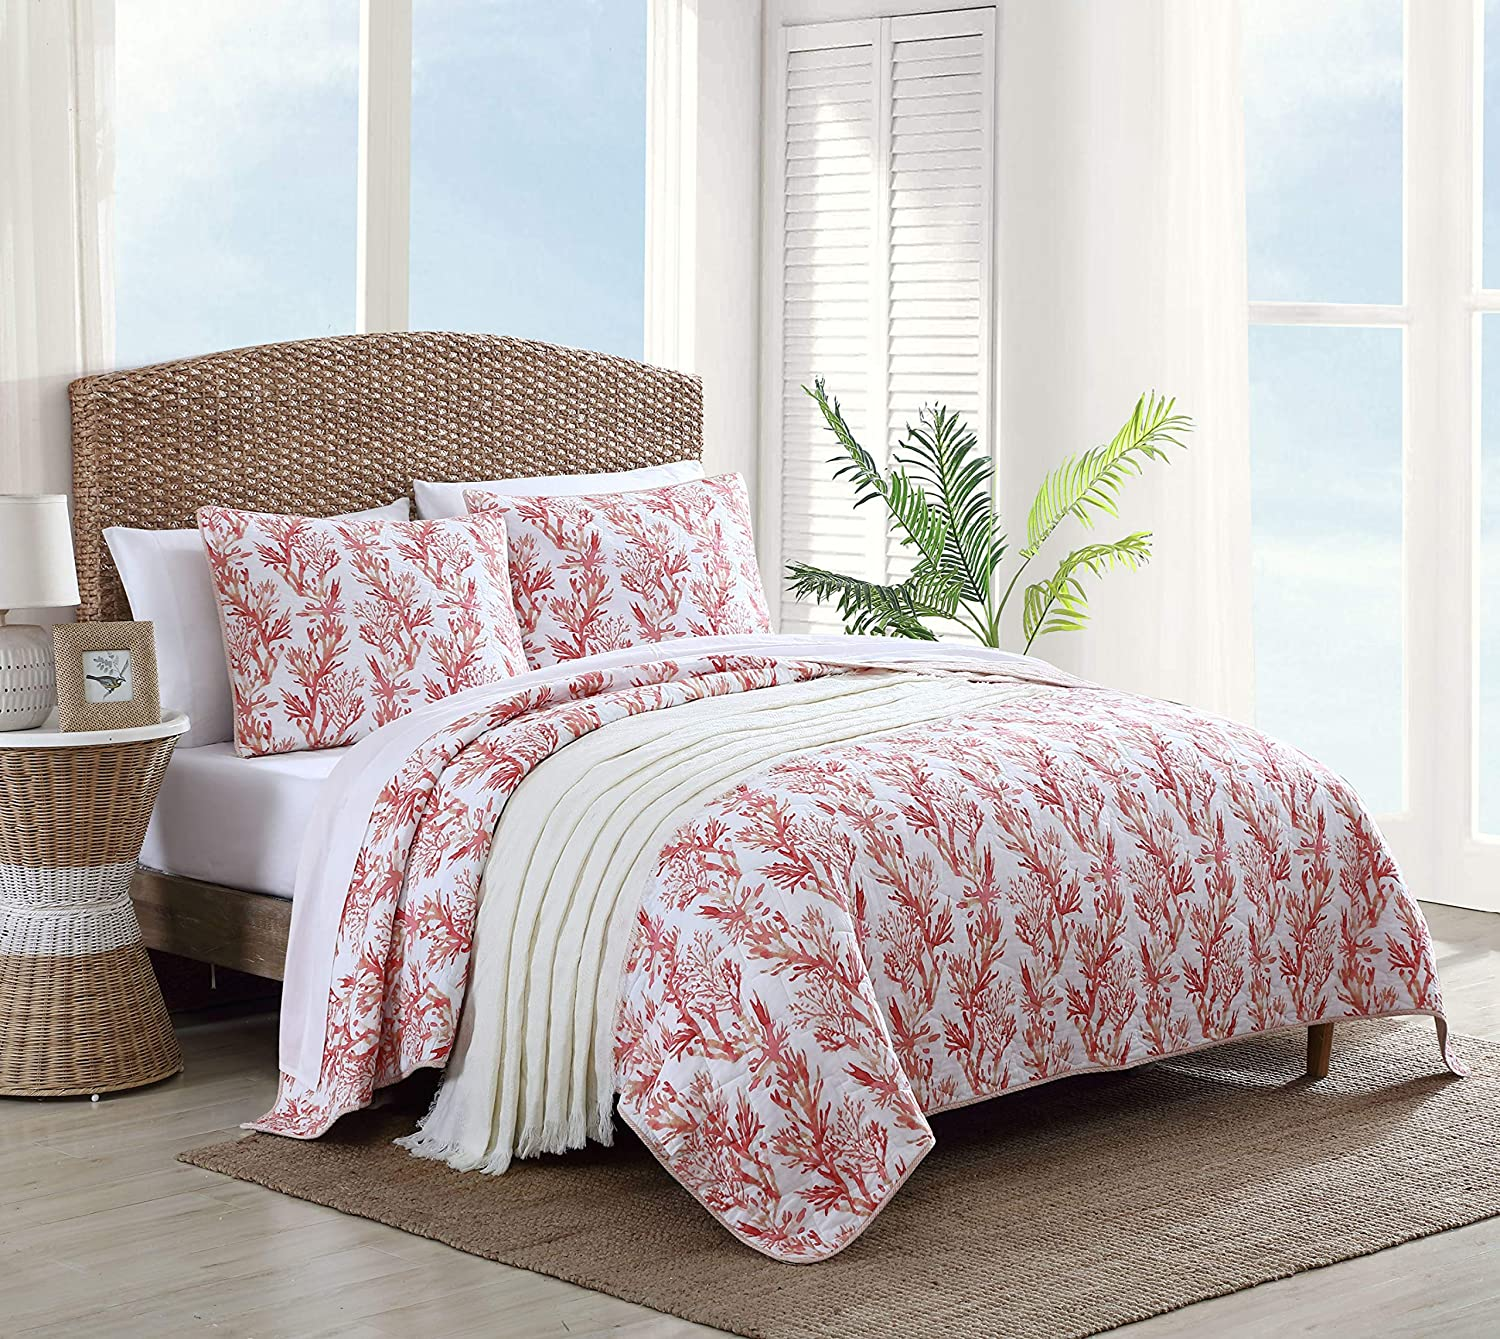 Tommy Bahama - USHSA91166842 | Sunset Reef Collection | Comforter Set Cotton Bedding, Reversible Design and Pre-Washed for Added Softness, Twin, Coral